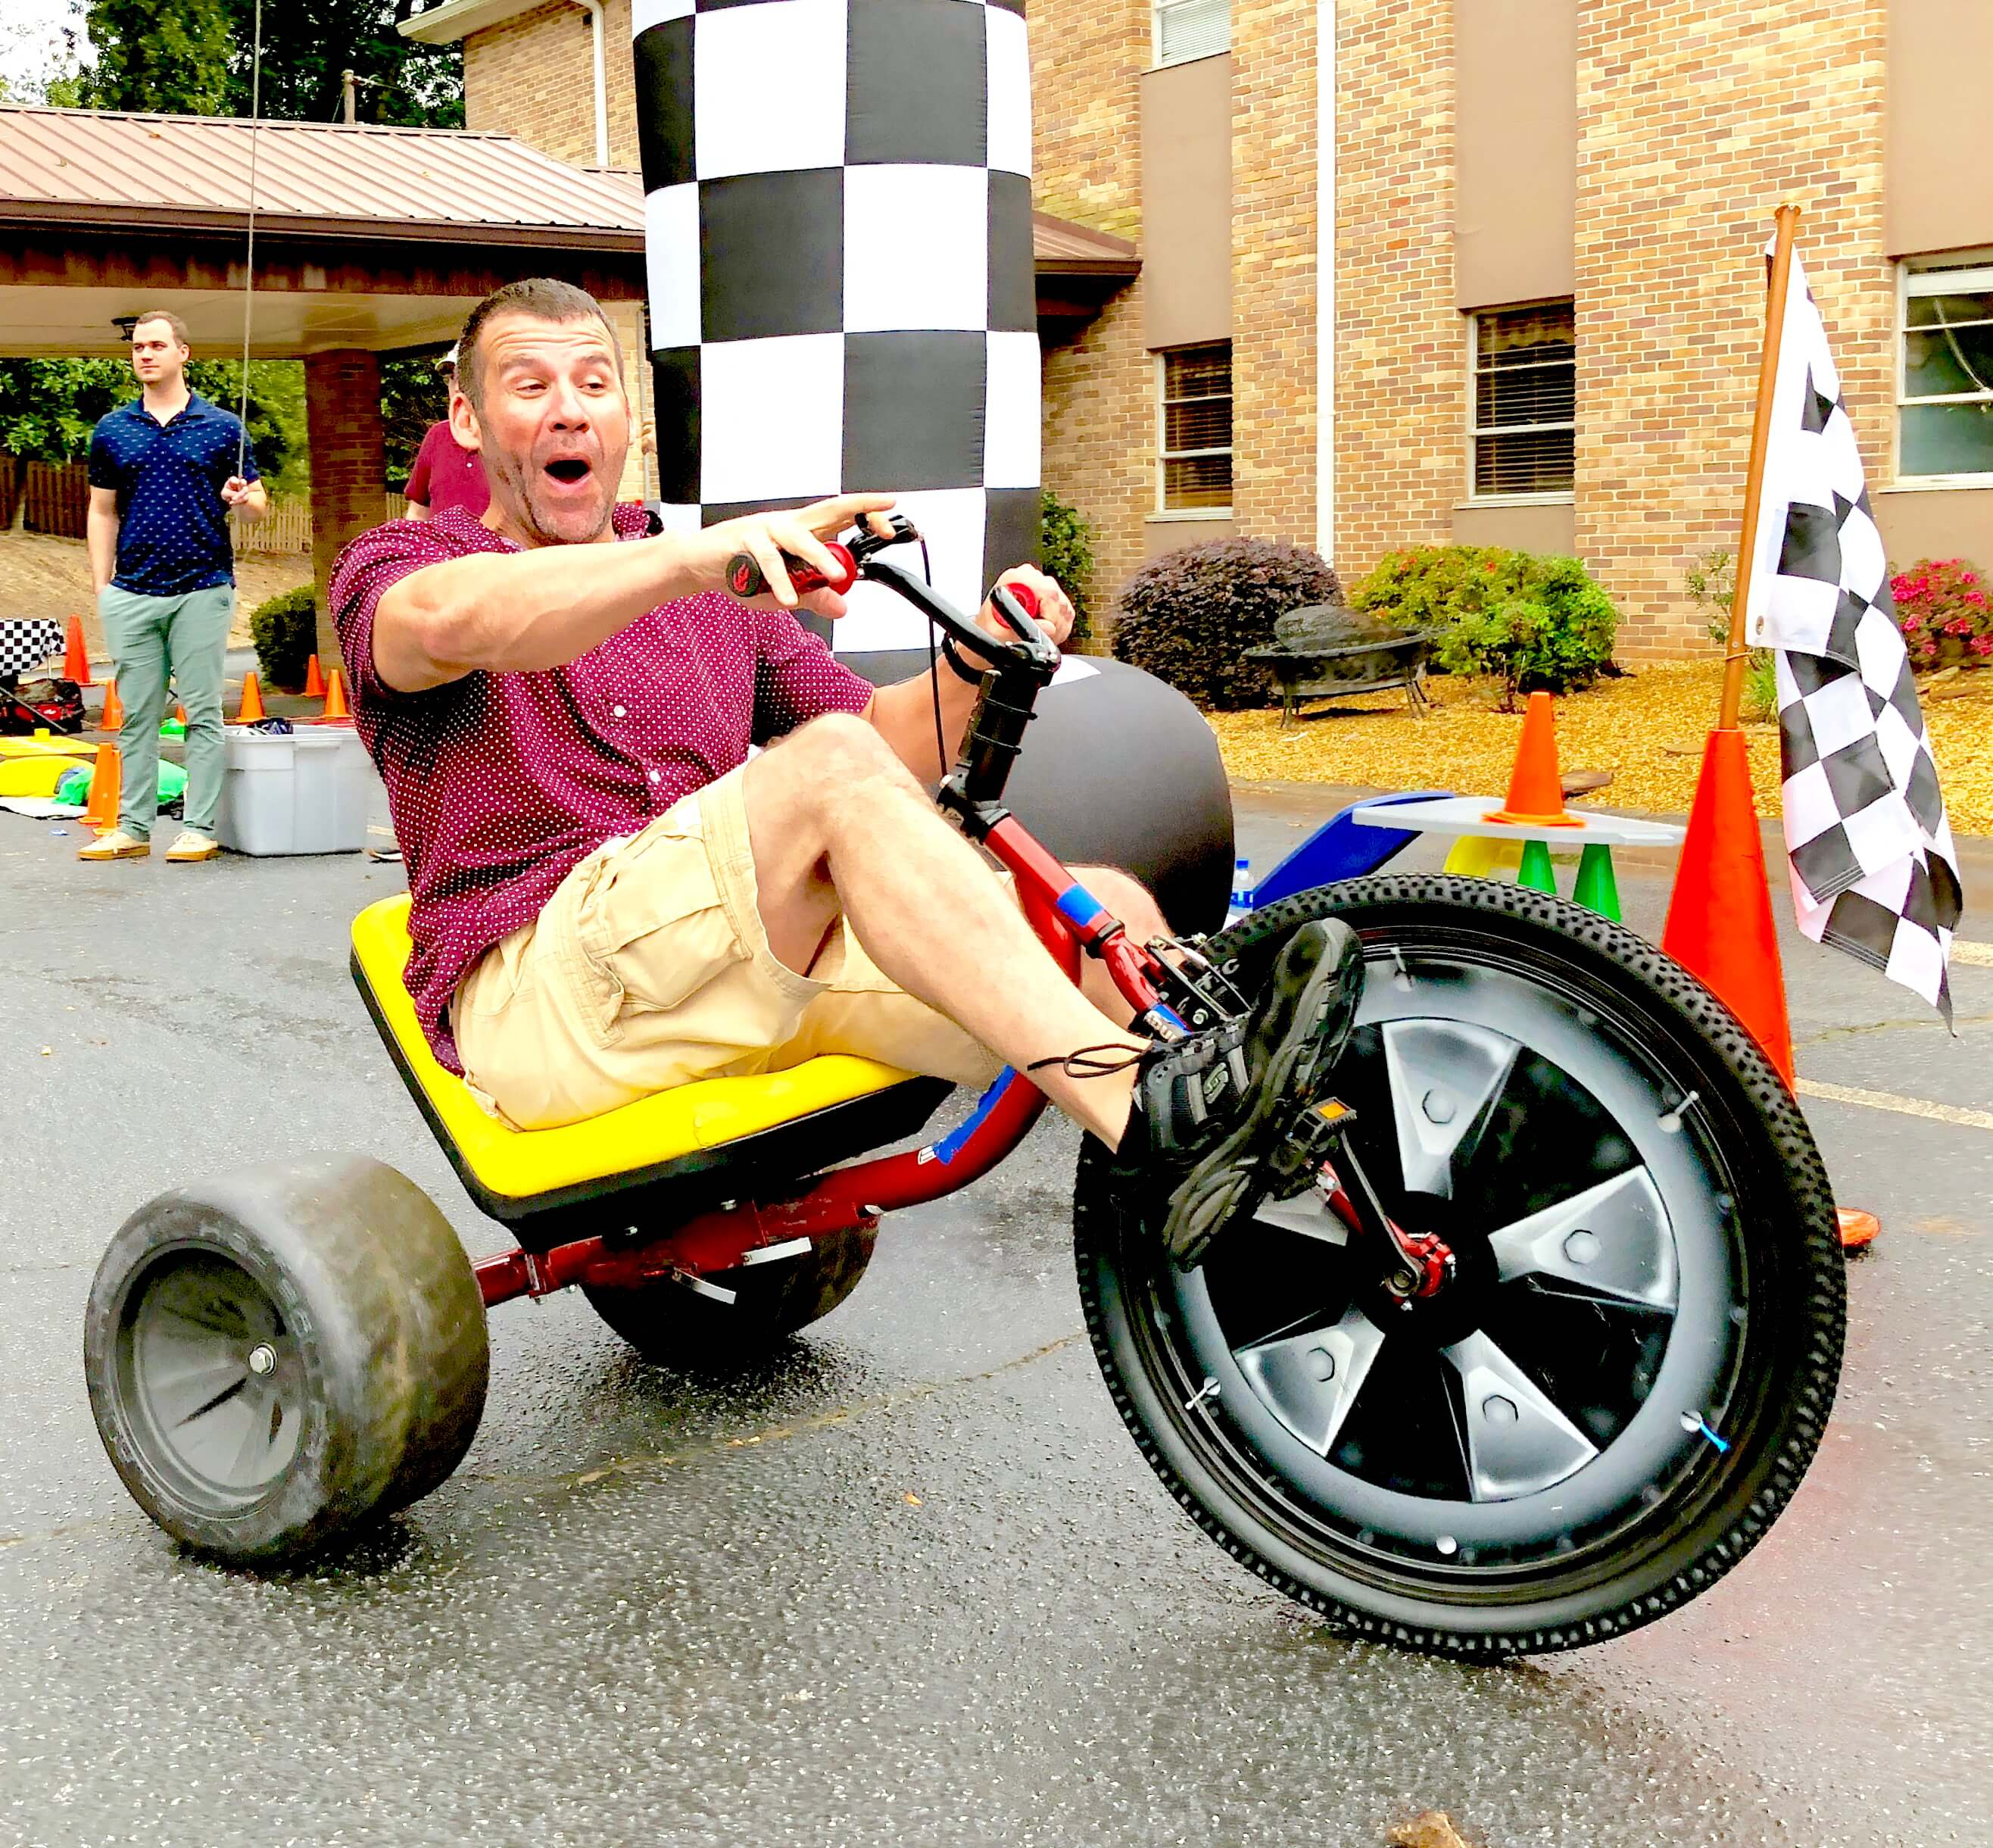 This guy is super excited for his first ride at an Adult Big Wheel Club team building event